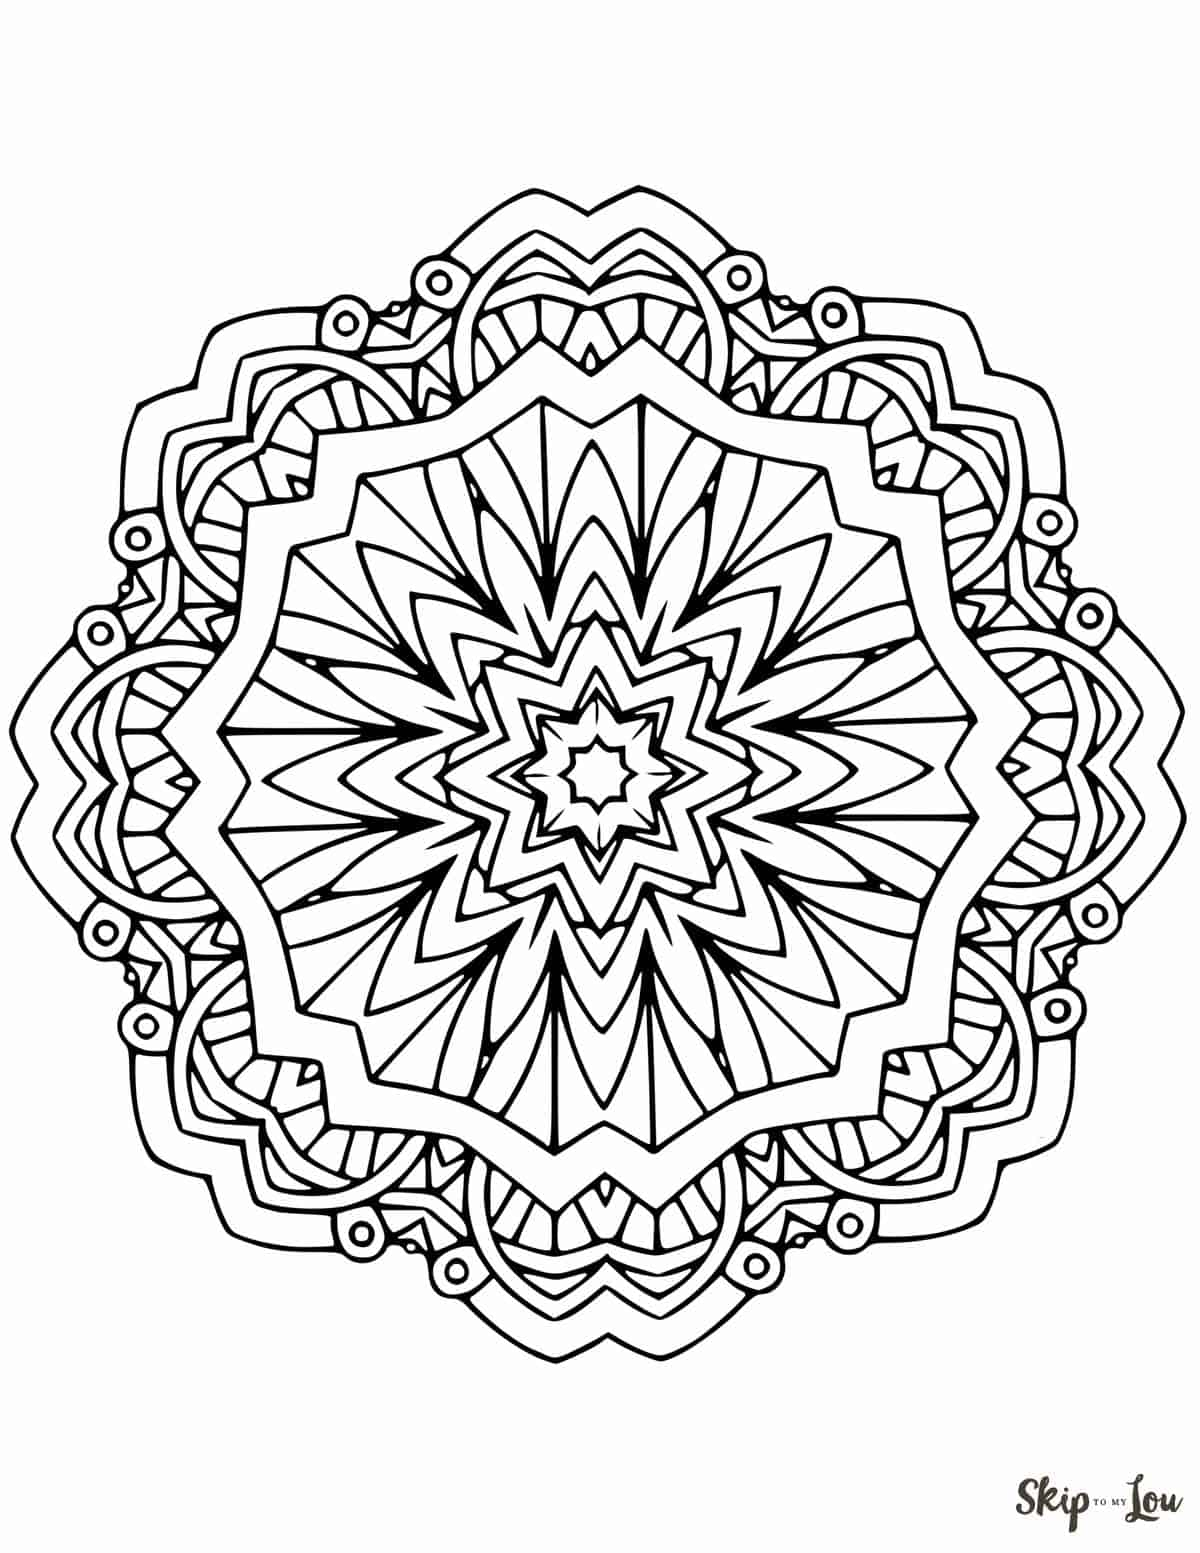 free mandalas coloring pages - photo#5